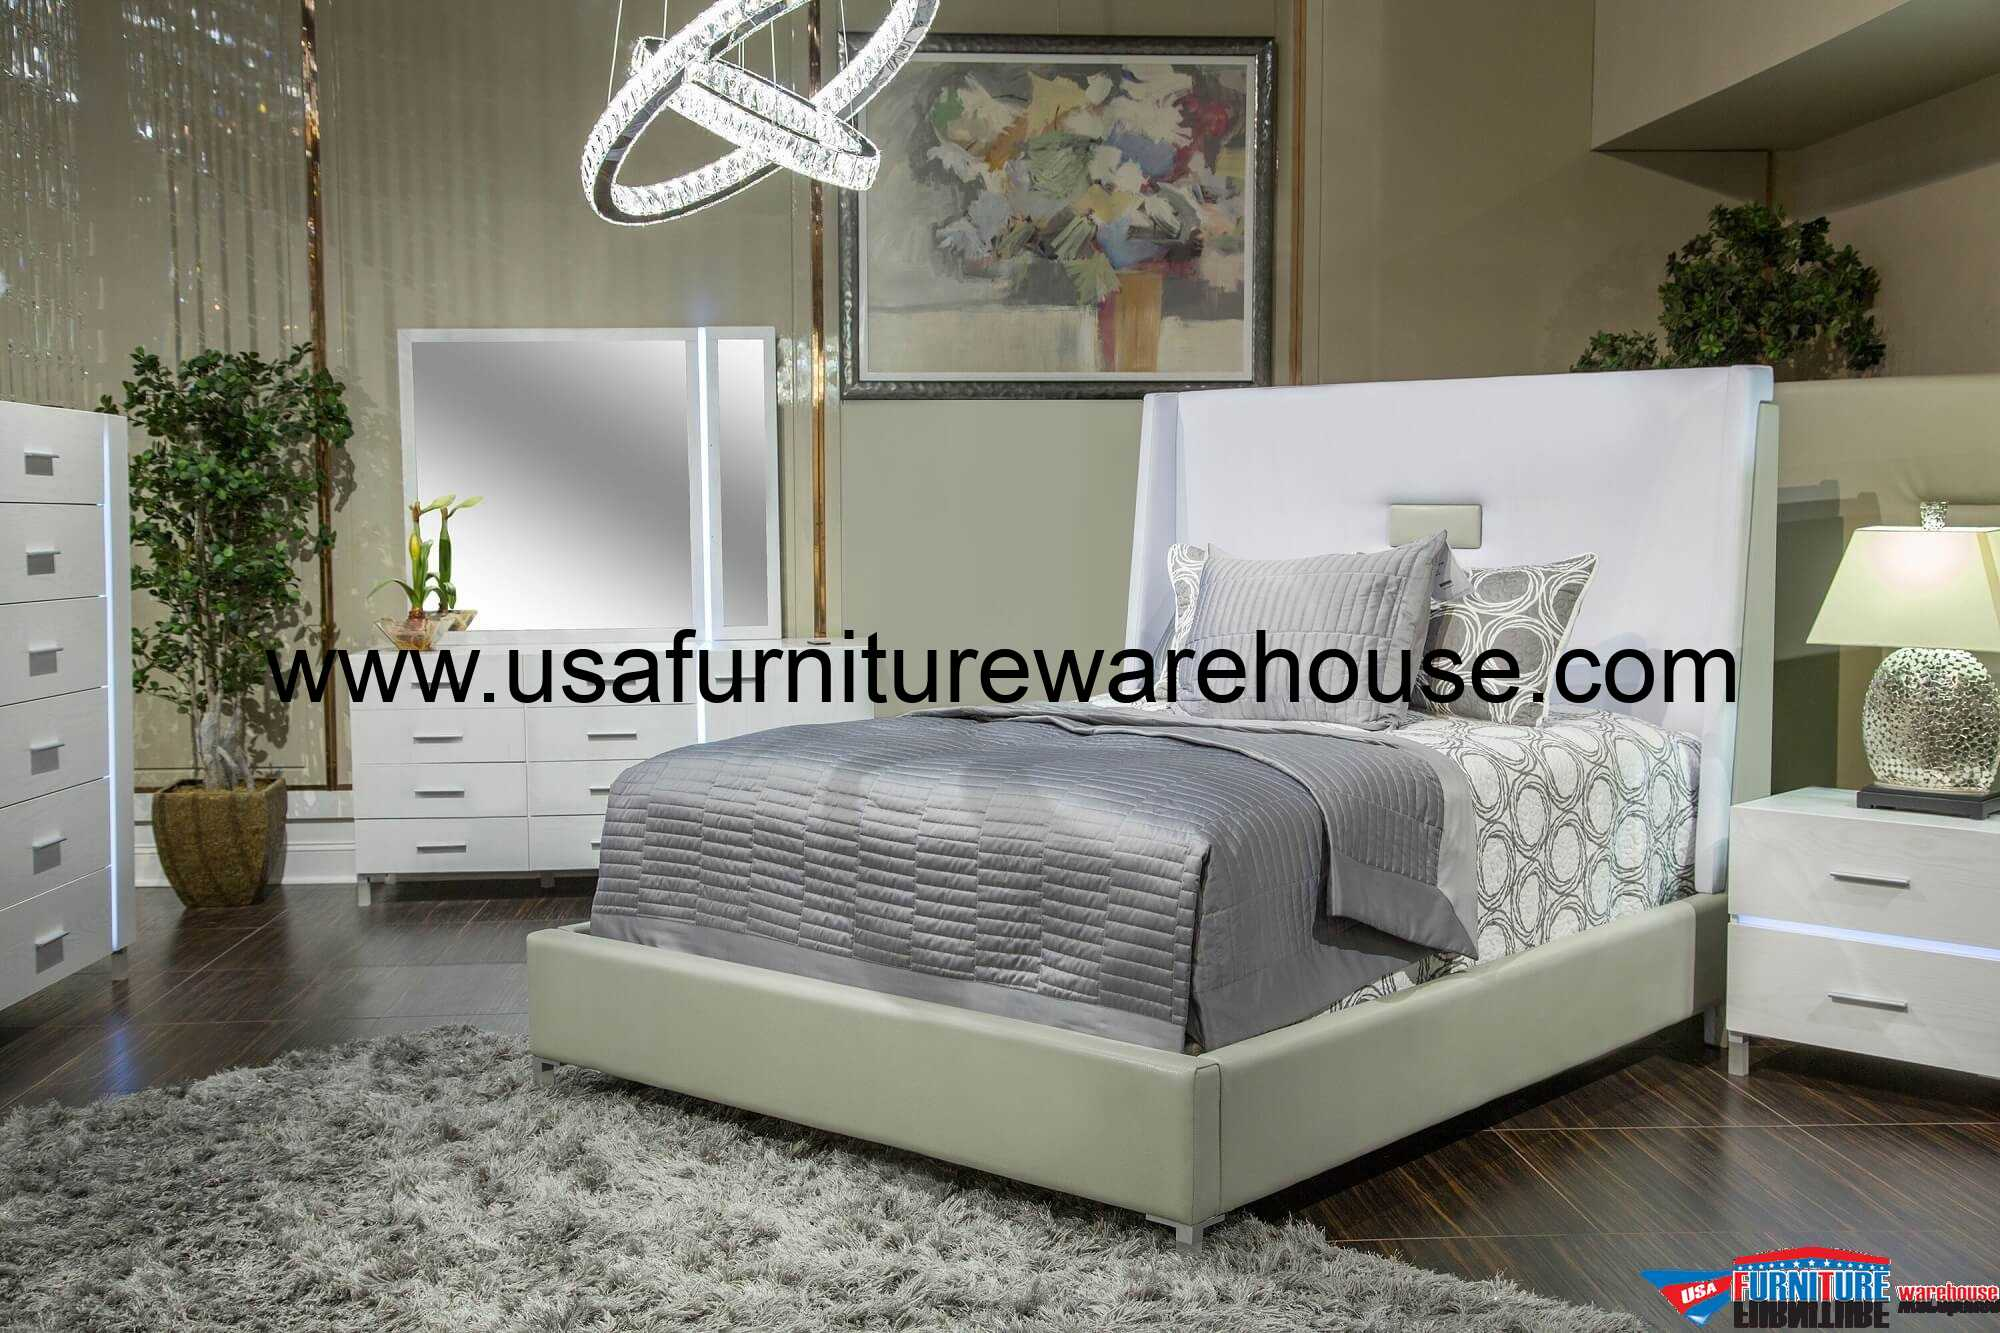 4 Piece Lumiere Modern Platform Bedroom Set - USA Furniture Warehouse